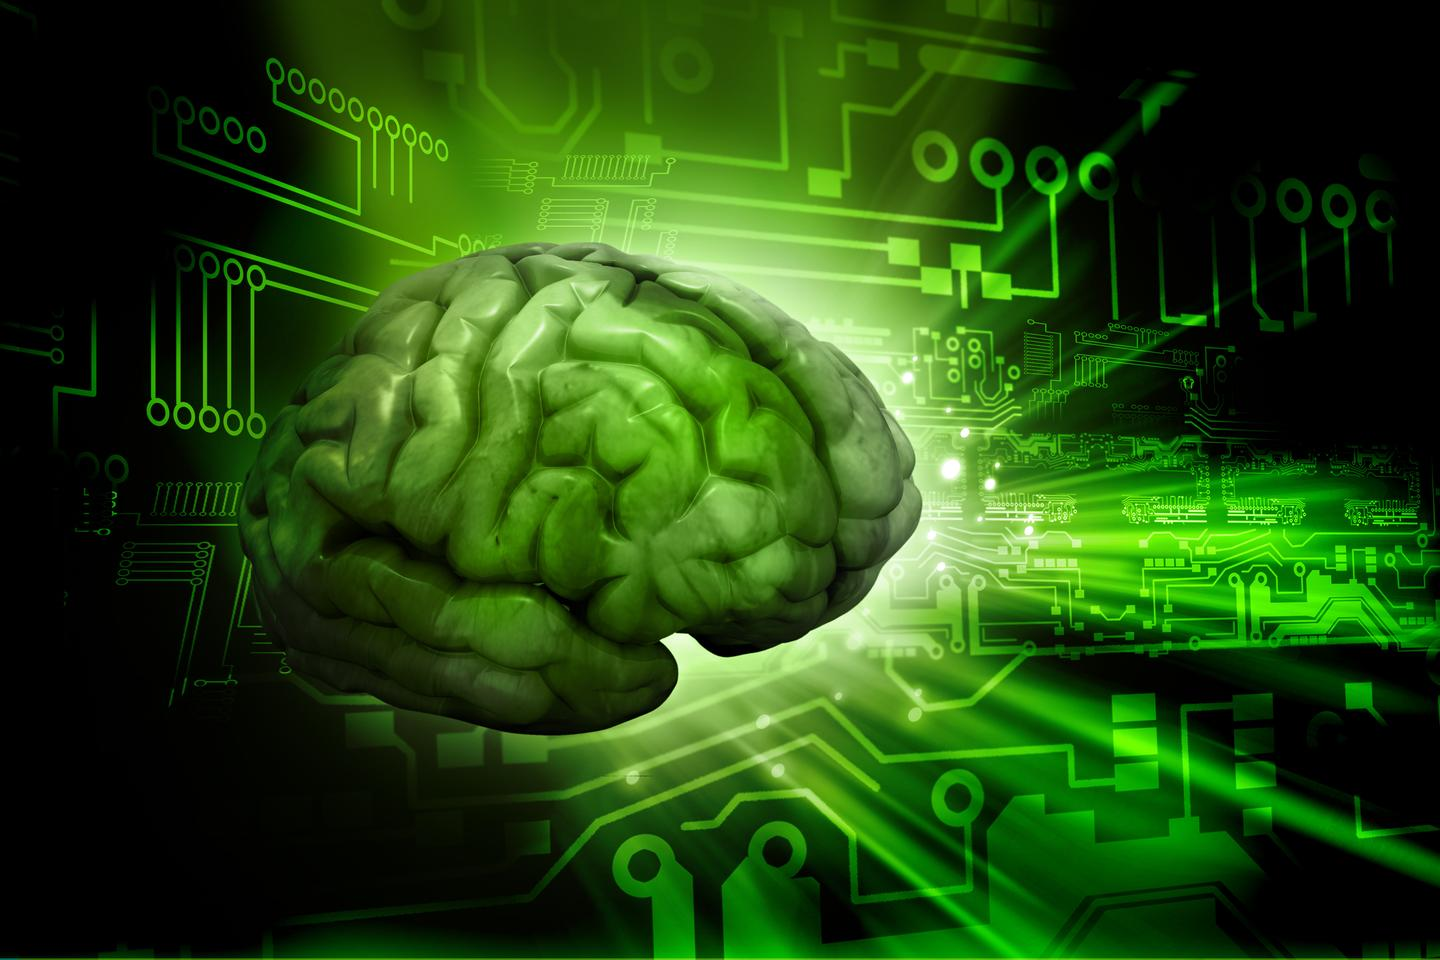 """Research conducted at the East Tennessee Sate University suggests that brain-computer interfaces could help sufferers of """"locked-in syndrome"""" to communicate (Image: Shutterstock)"""